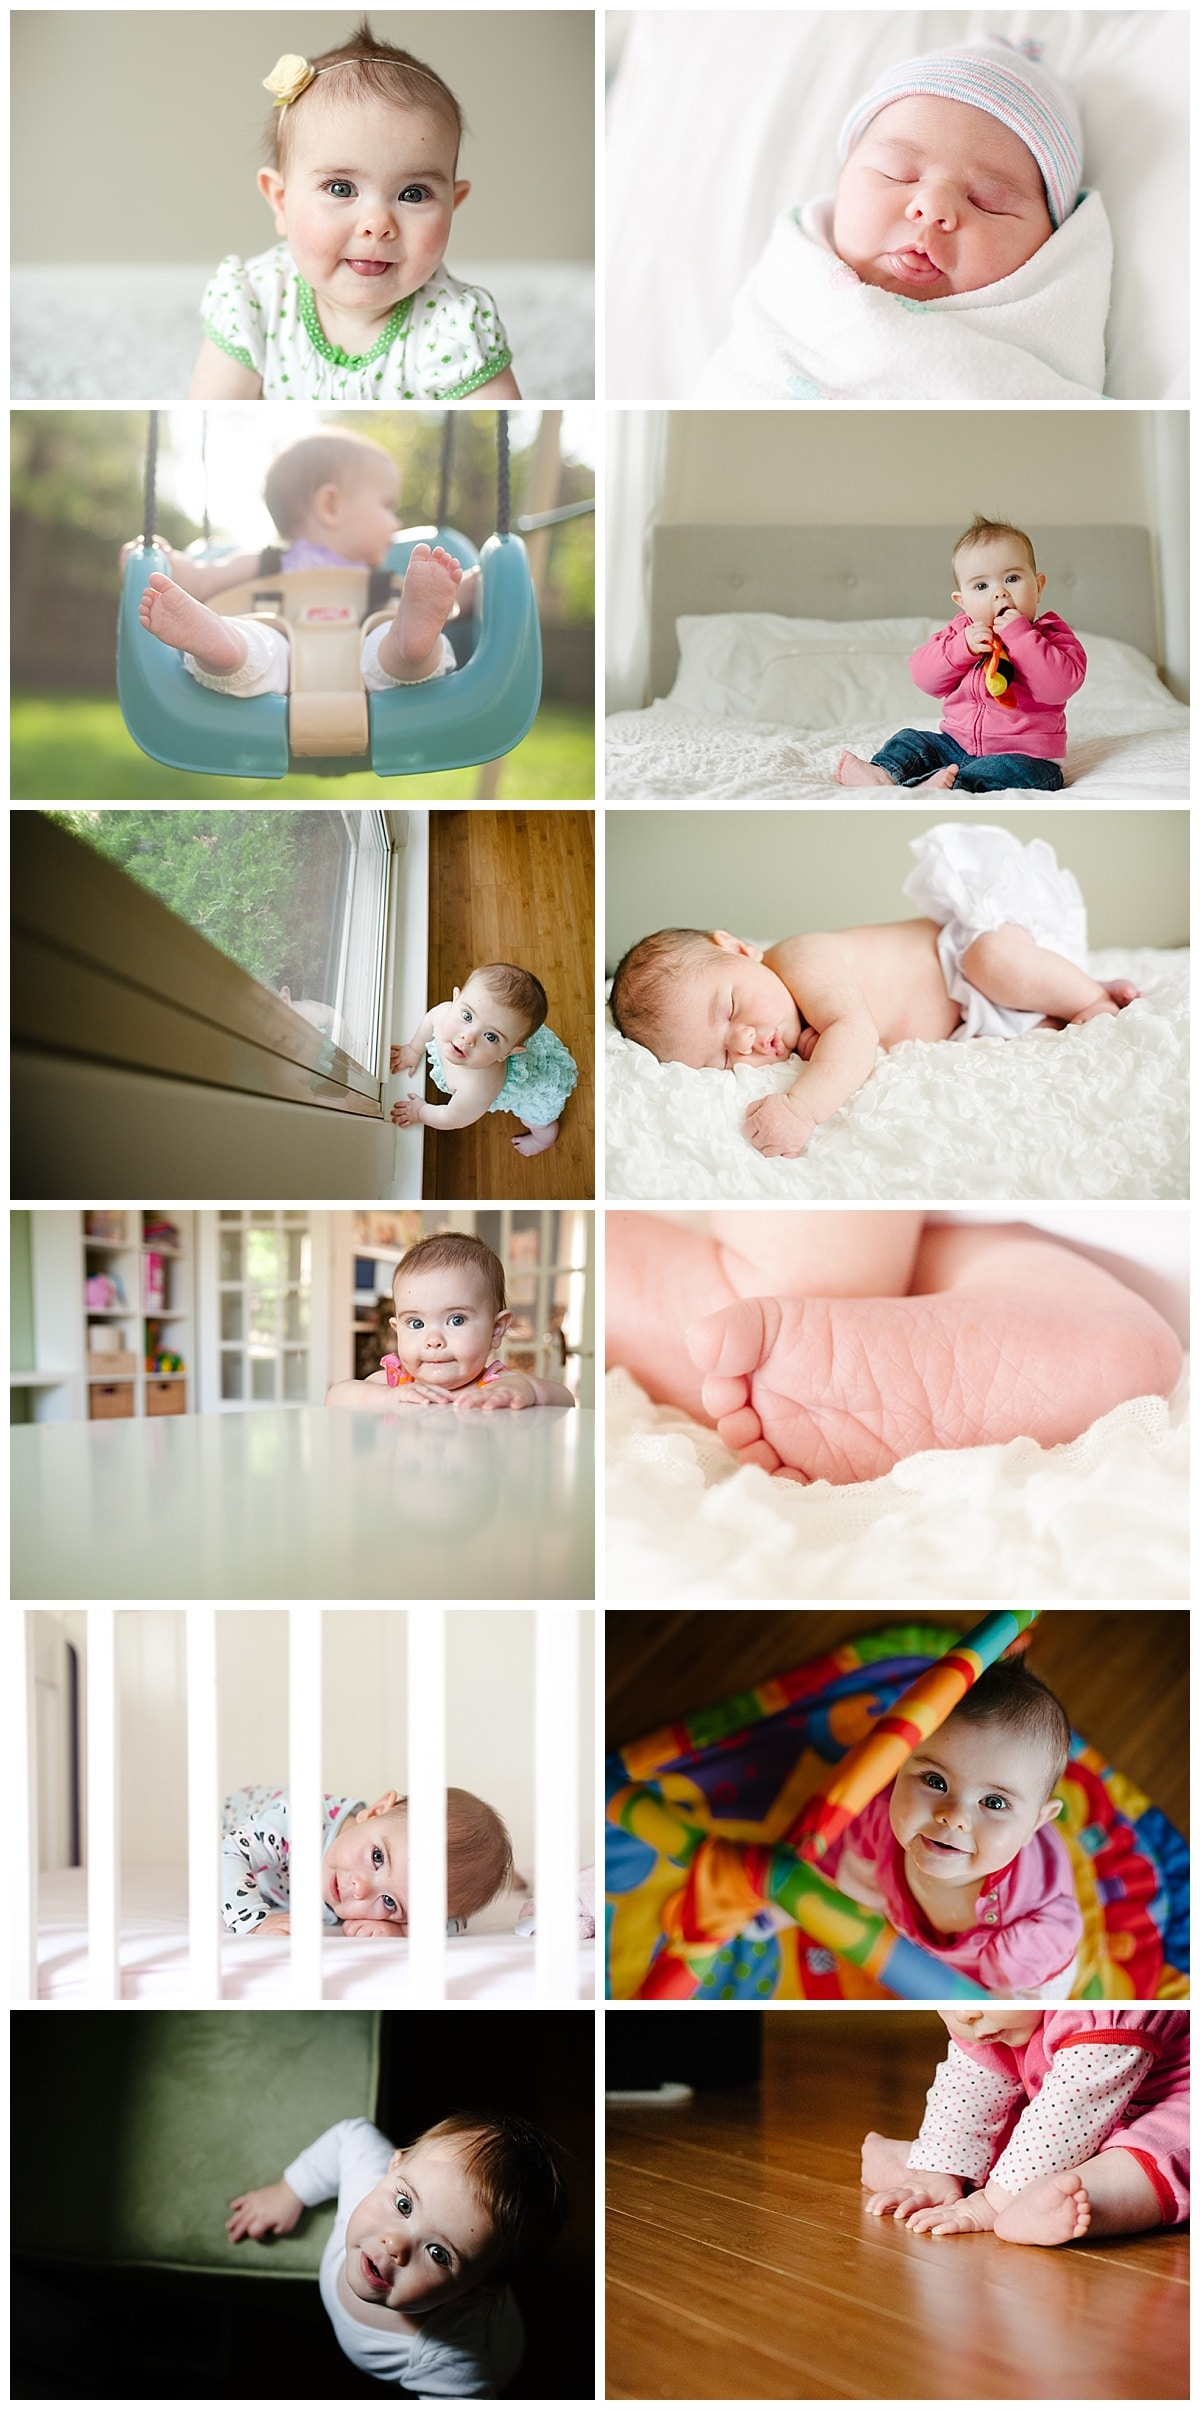 Amazing tips to help you photograph your baby such fun and creative ways to capture